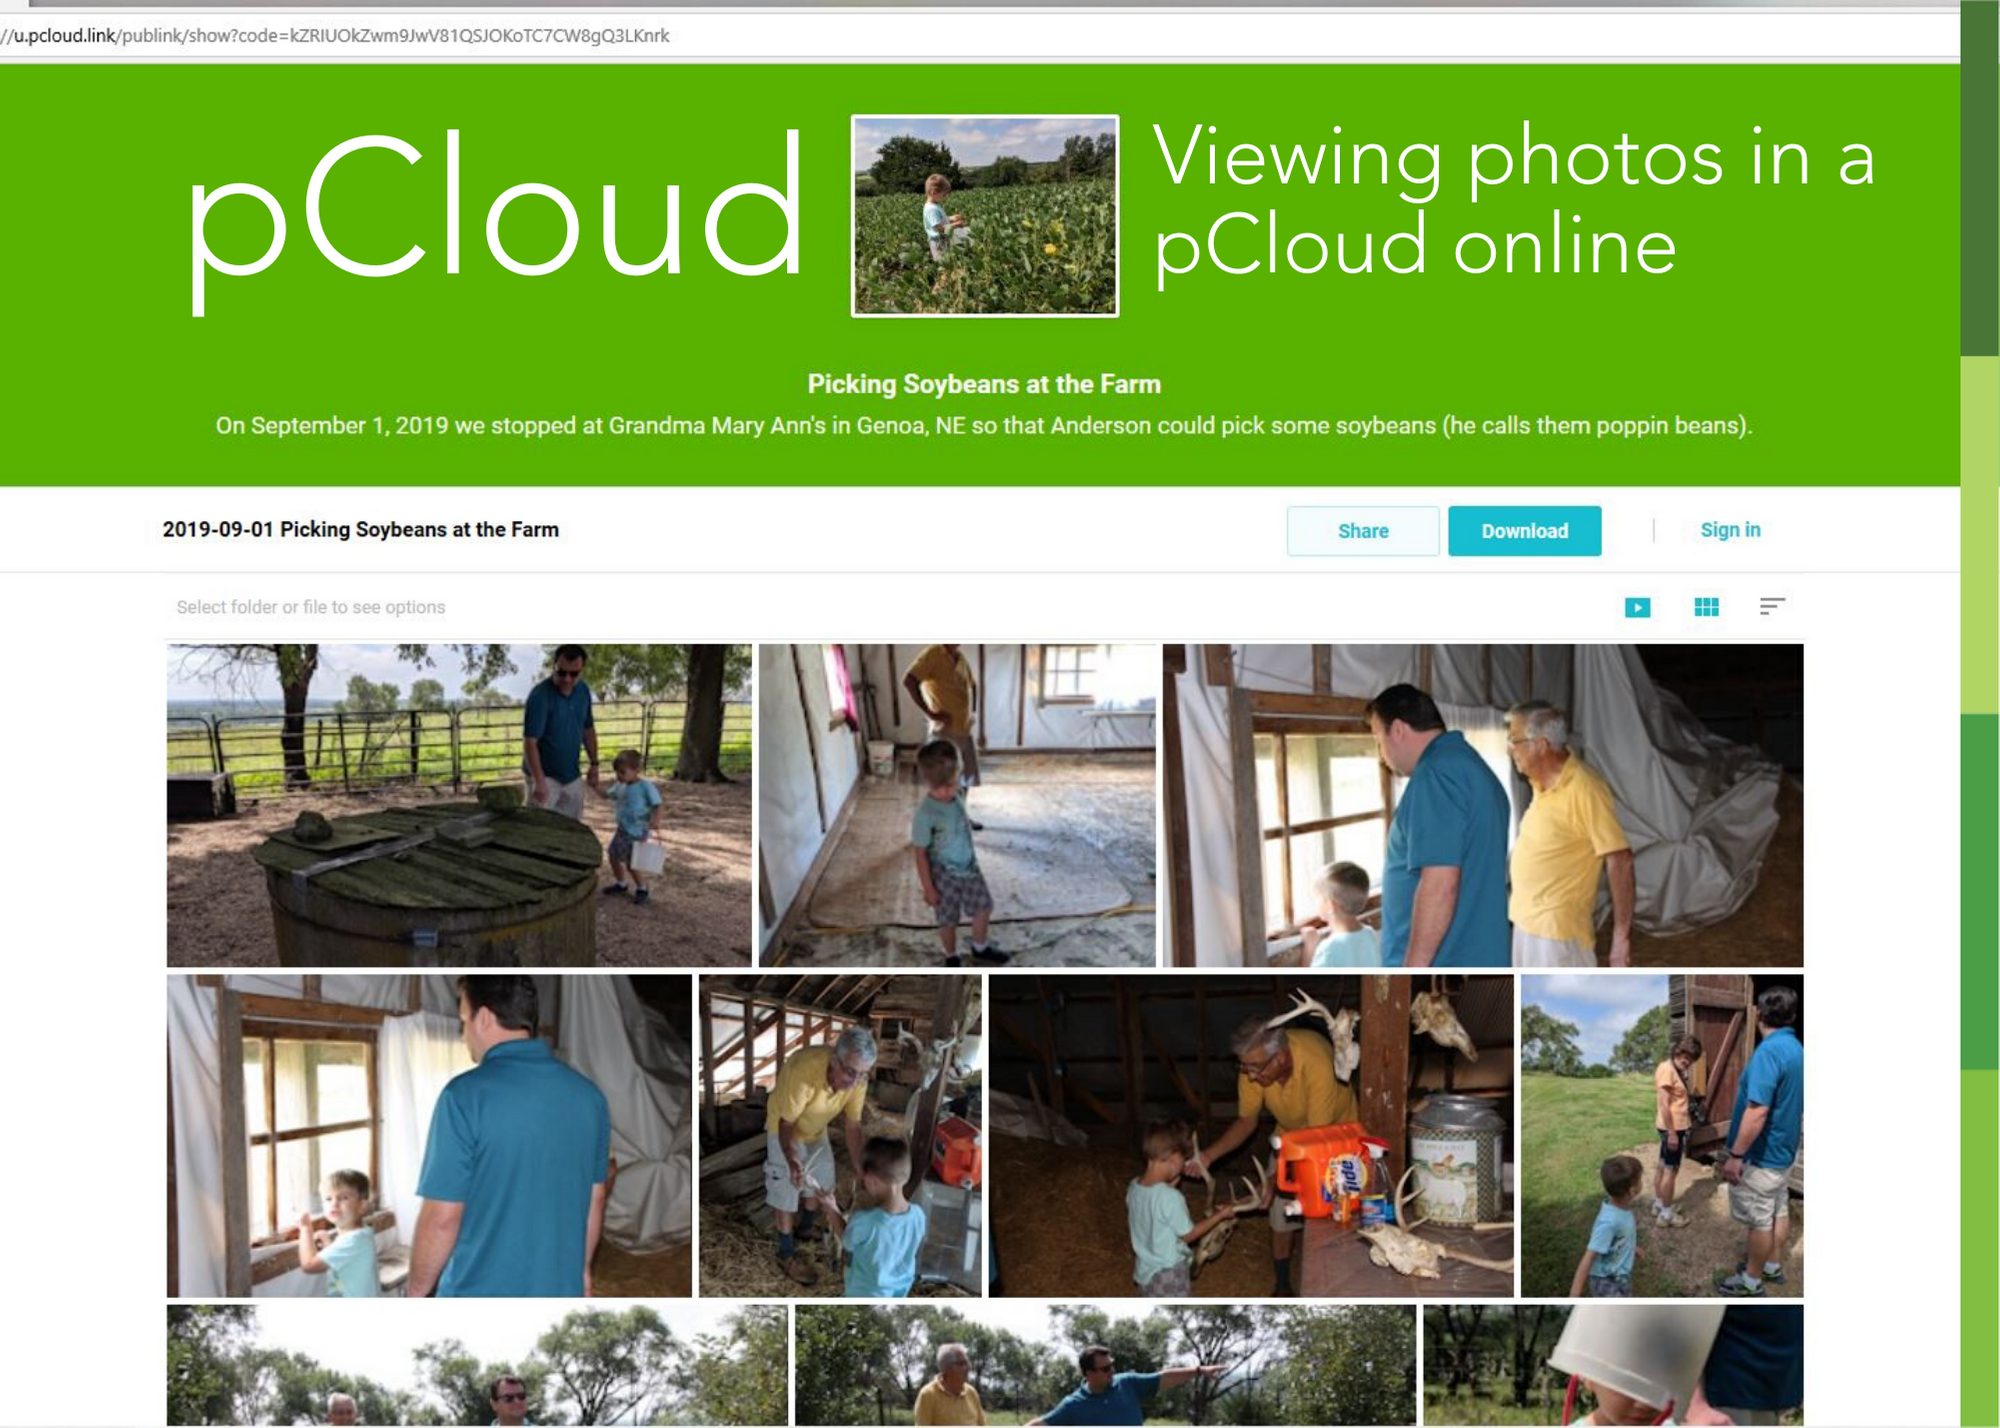 view of photos online in a pcloud folder